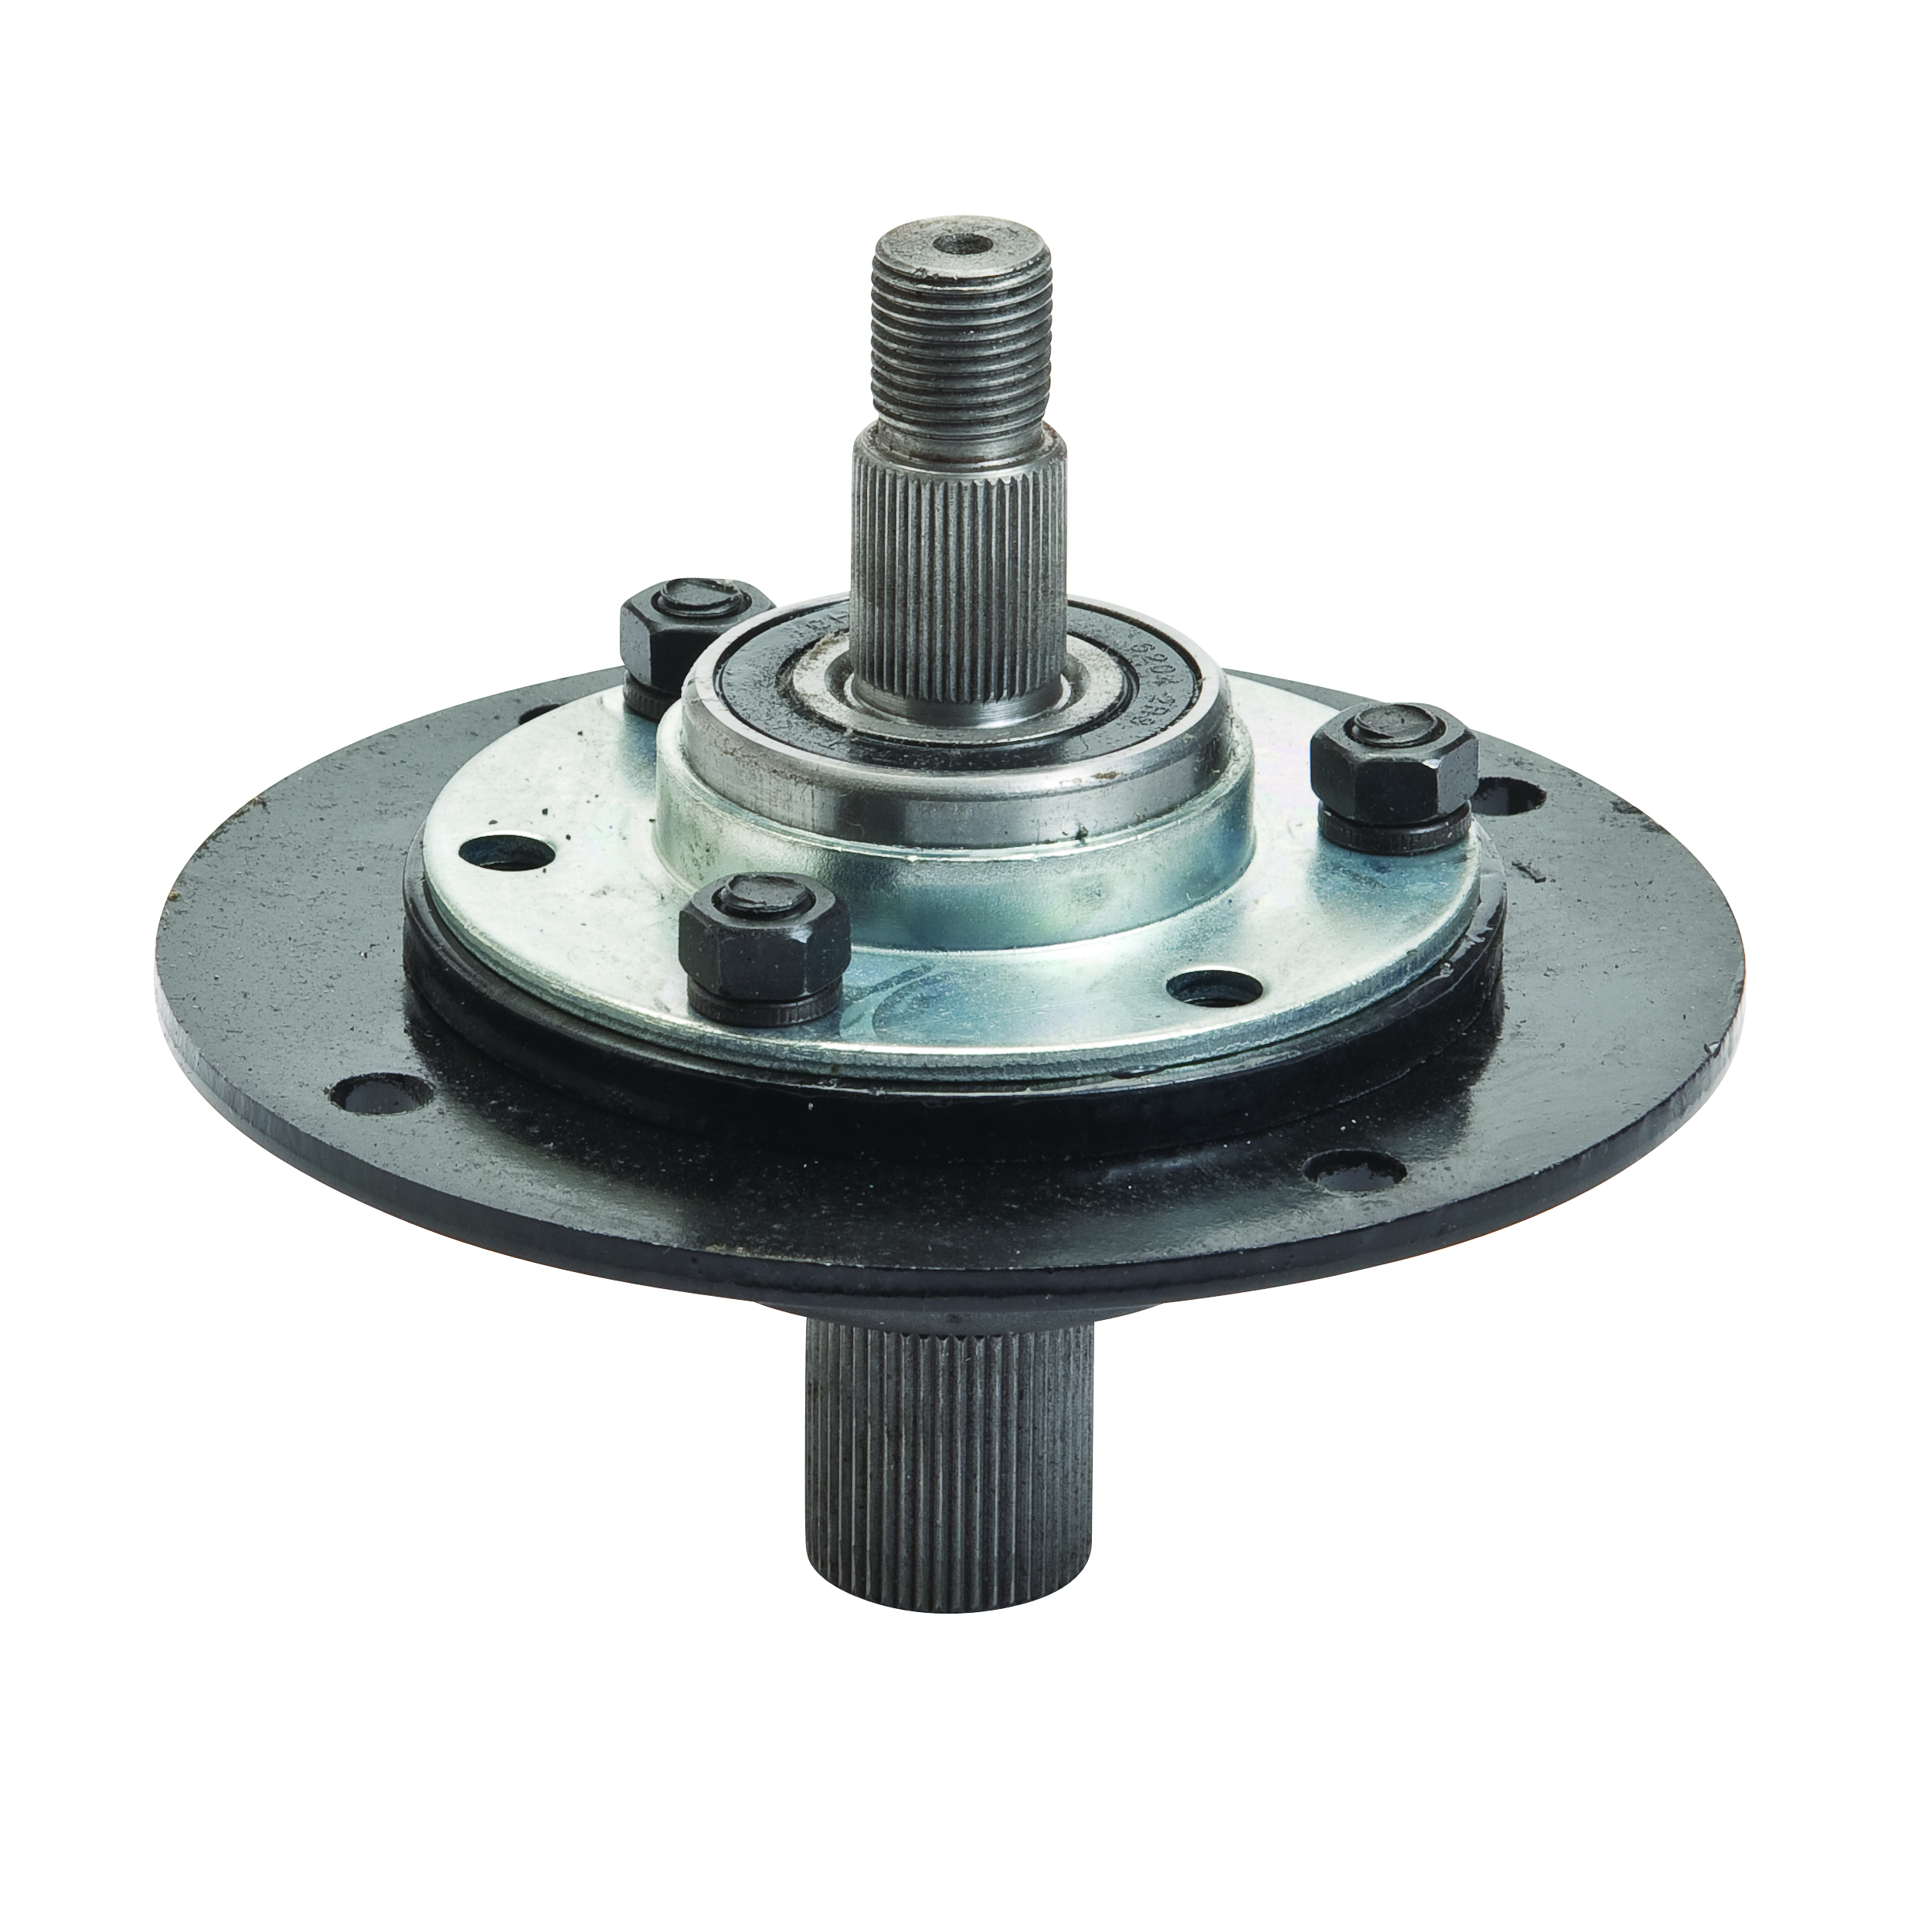 Mtd Mower Deck Bearings : Replacement spindle for mtd quot deck